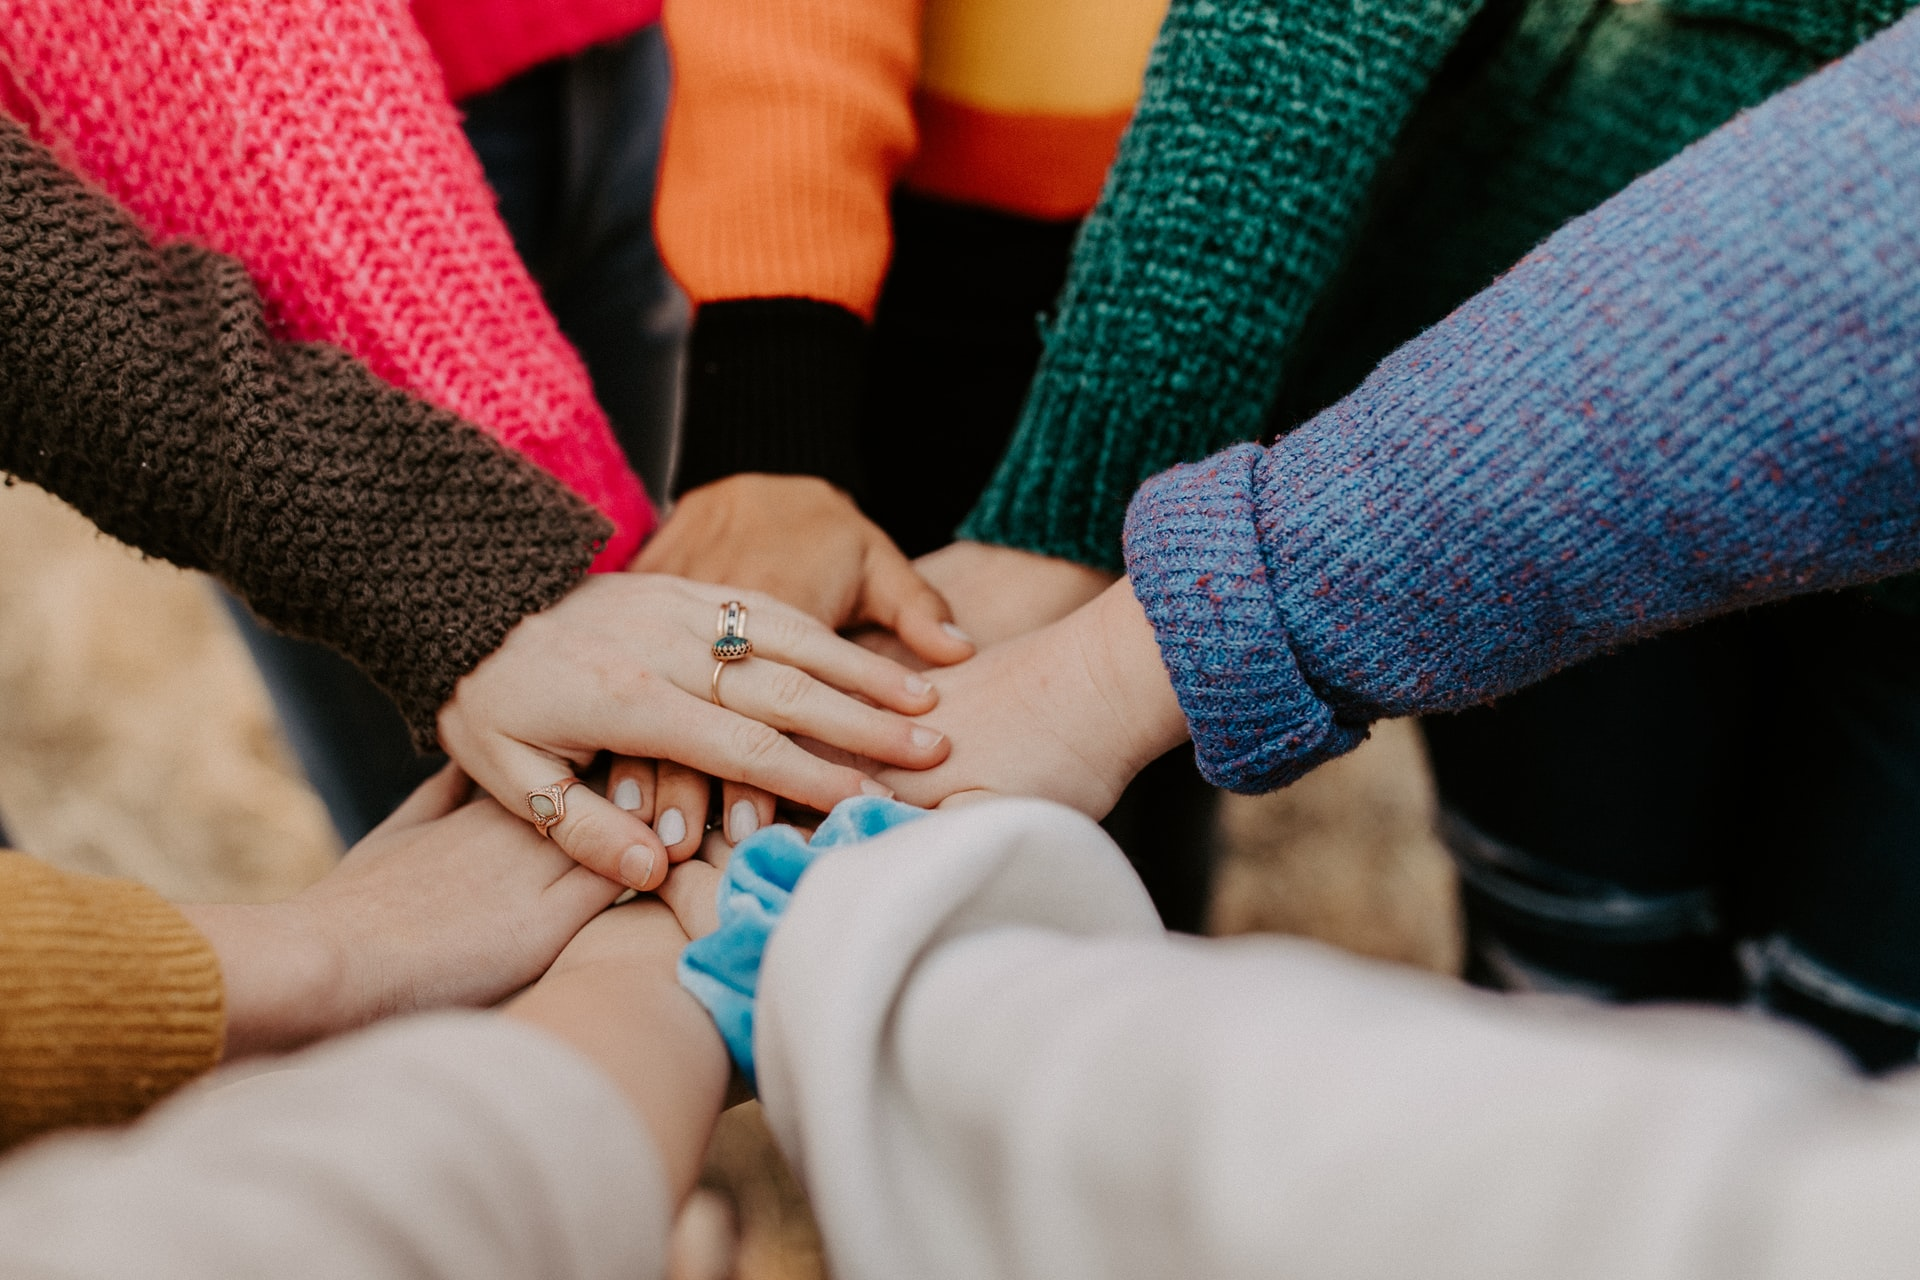 A group of people stand in a circle and reach their hands out. The hands are piled up on each other. Some are wearing rings and bracelets and the colourful sweaters and cardigans next to each other looks like a rainbow.